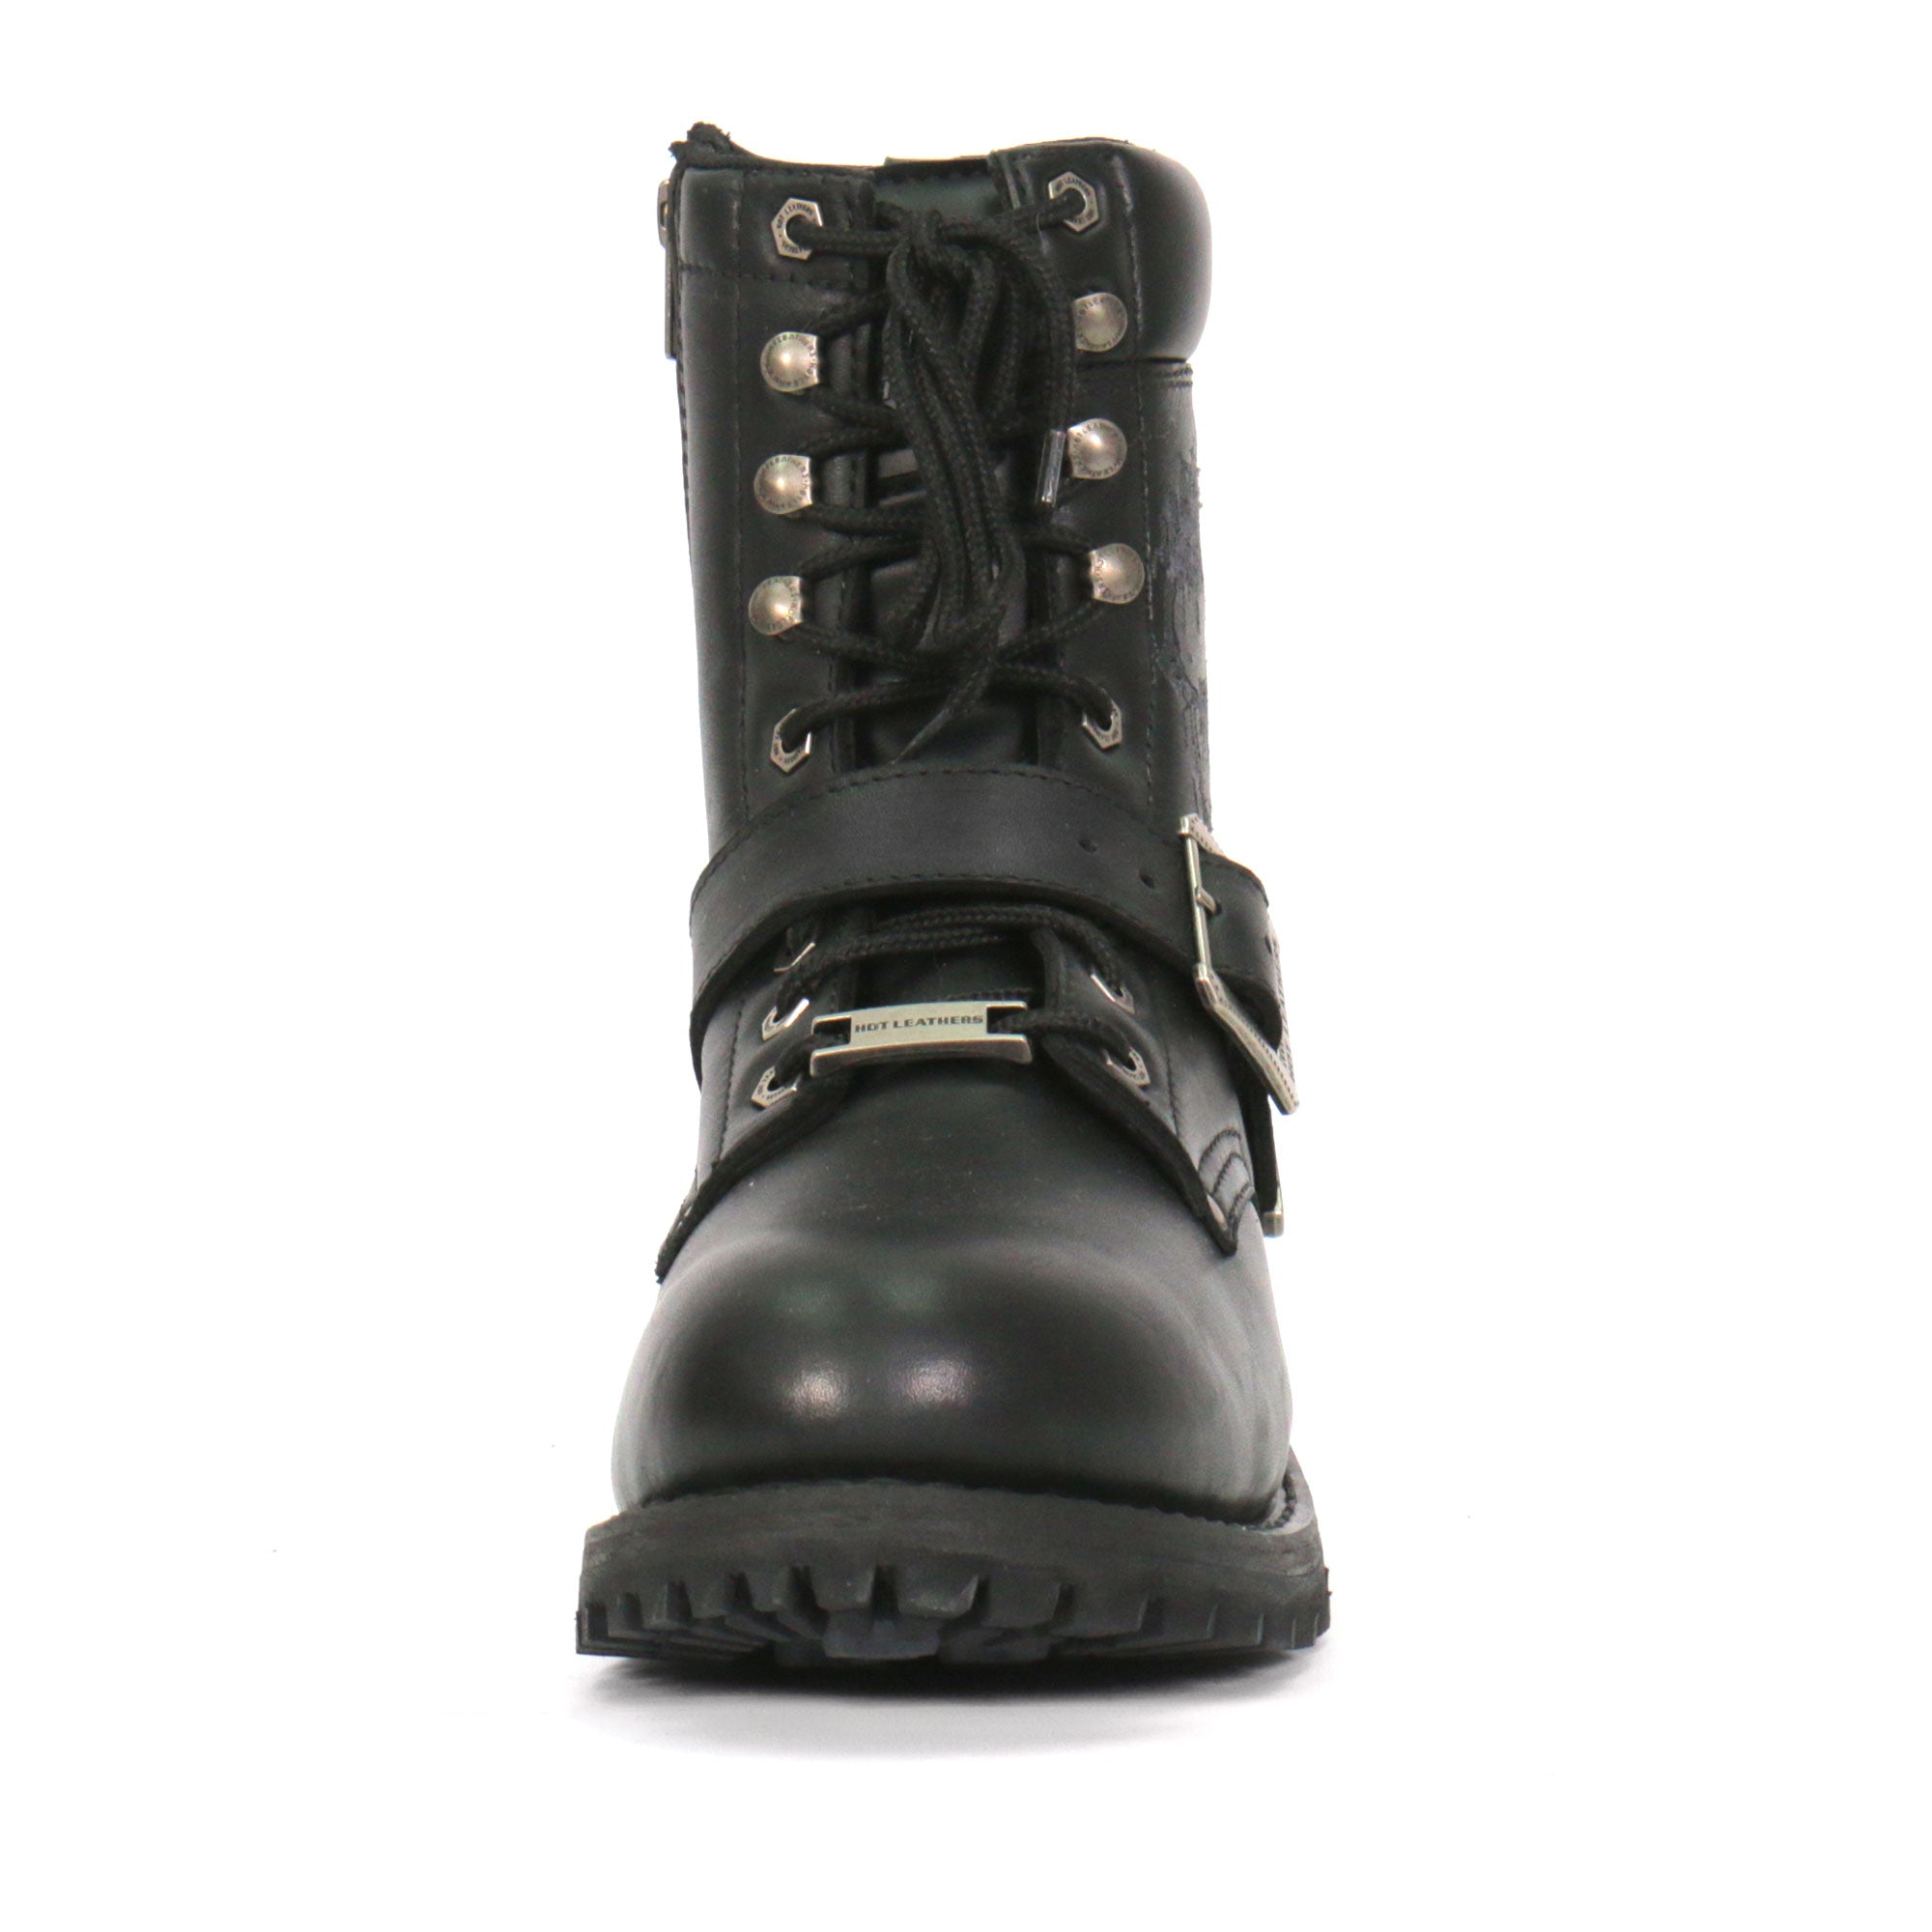 Hot Leathers Grave Rub Skull Tall Logger Motorcycle Boot